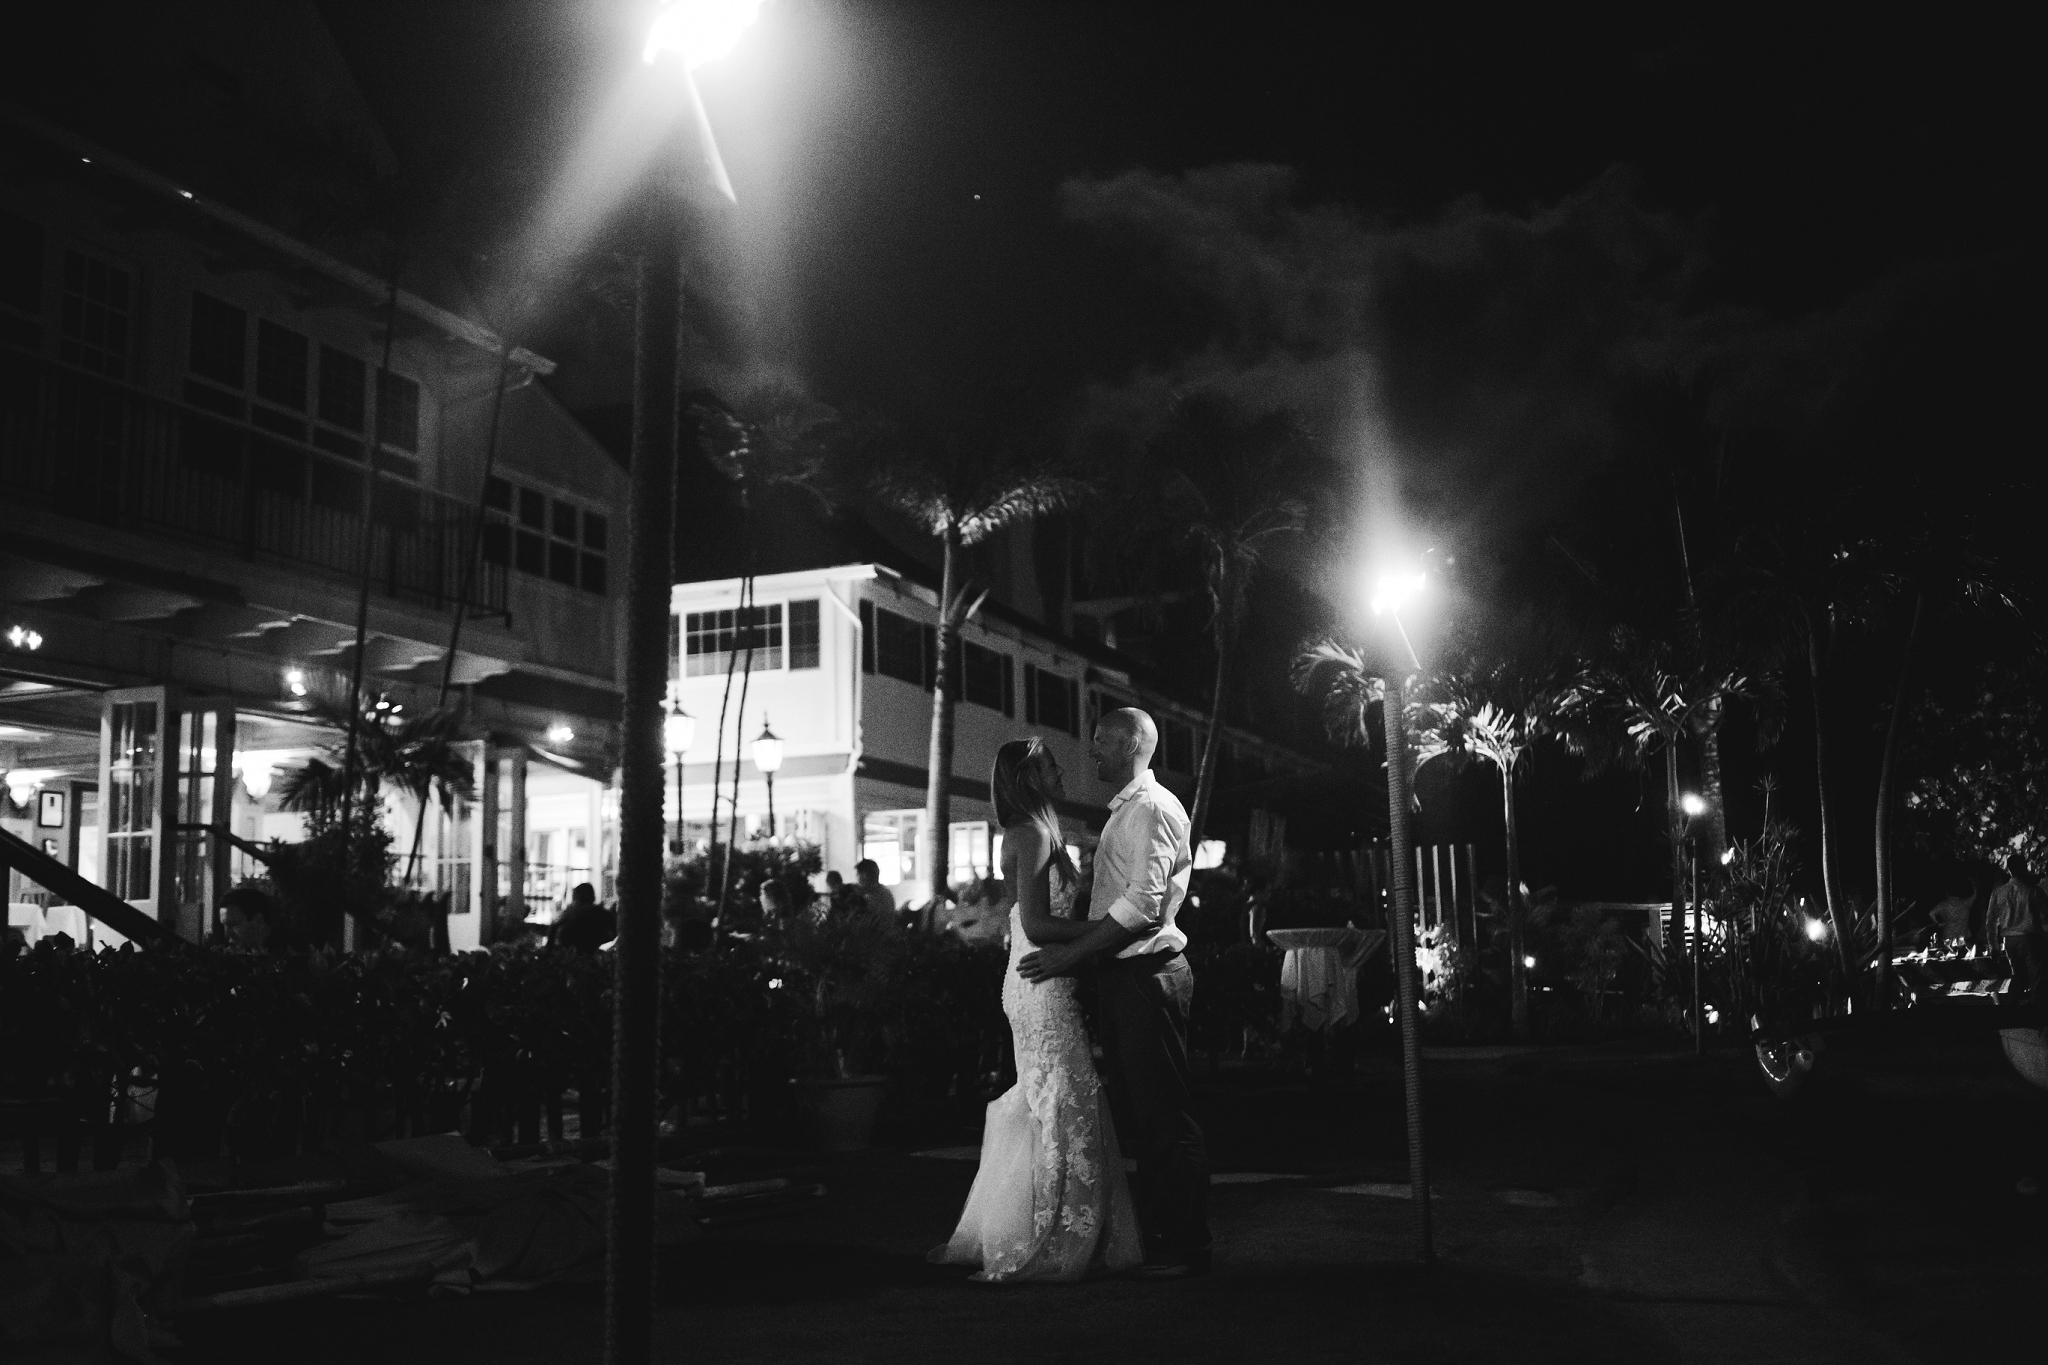 Maui_wedding_photographer_hawaii_destination_vannessa_kralovic (12).jpg